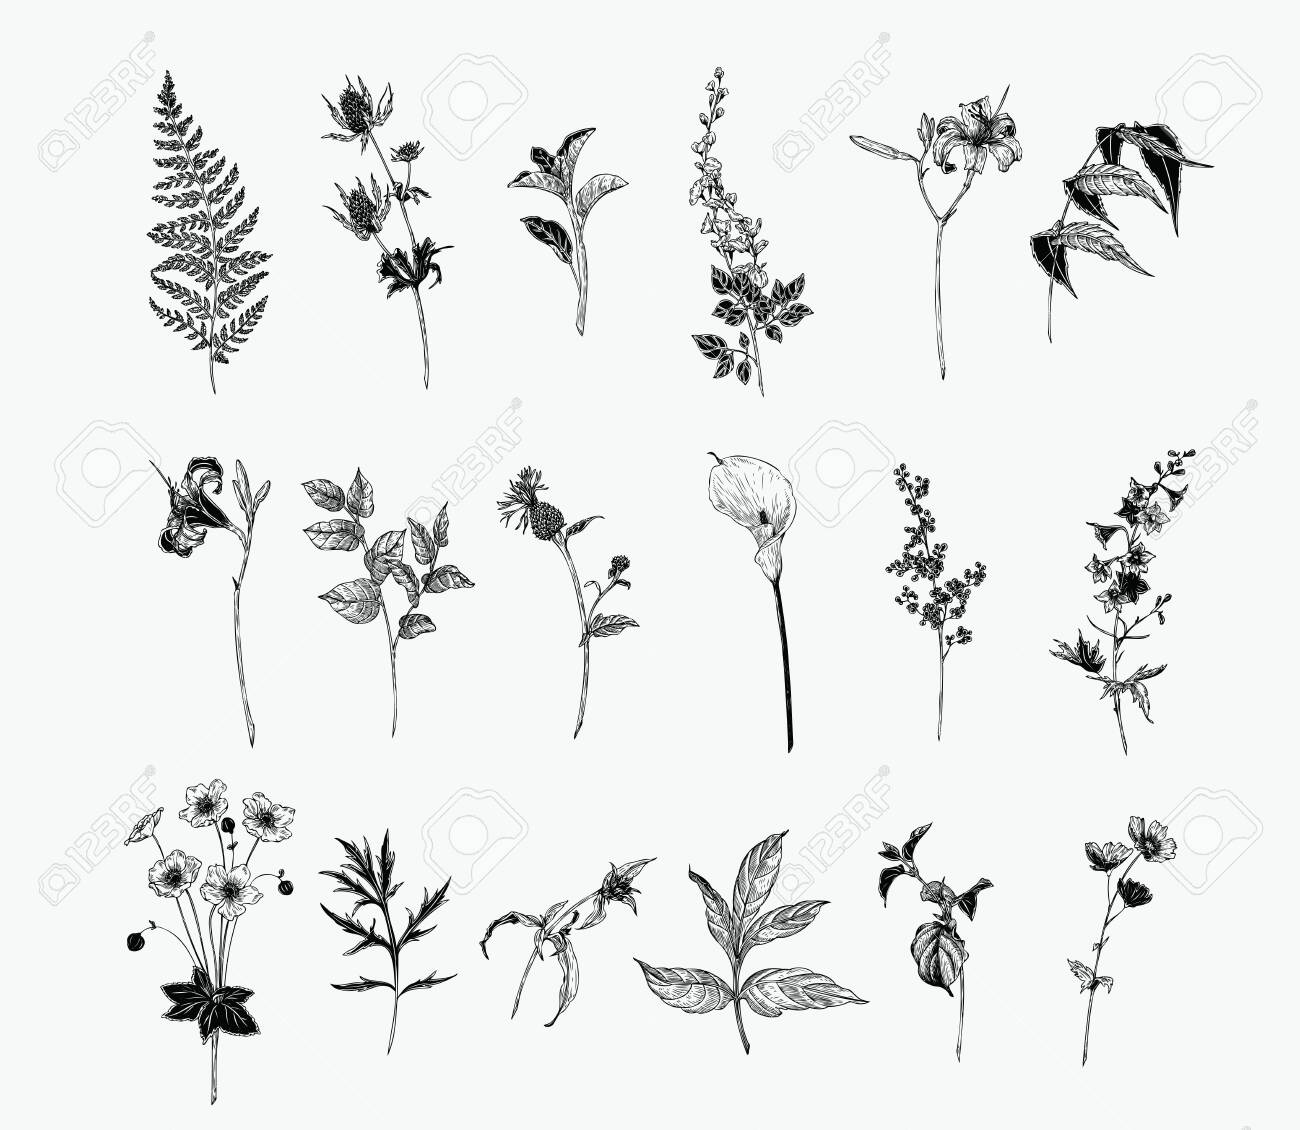 Vintage Wild Flower Illustration Set Isolated Black And White Royalty Free Cliparts Vectors And Stock Illustration Image 127095997